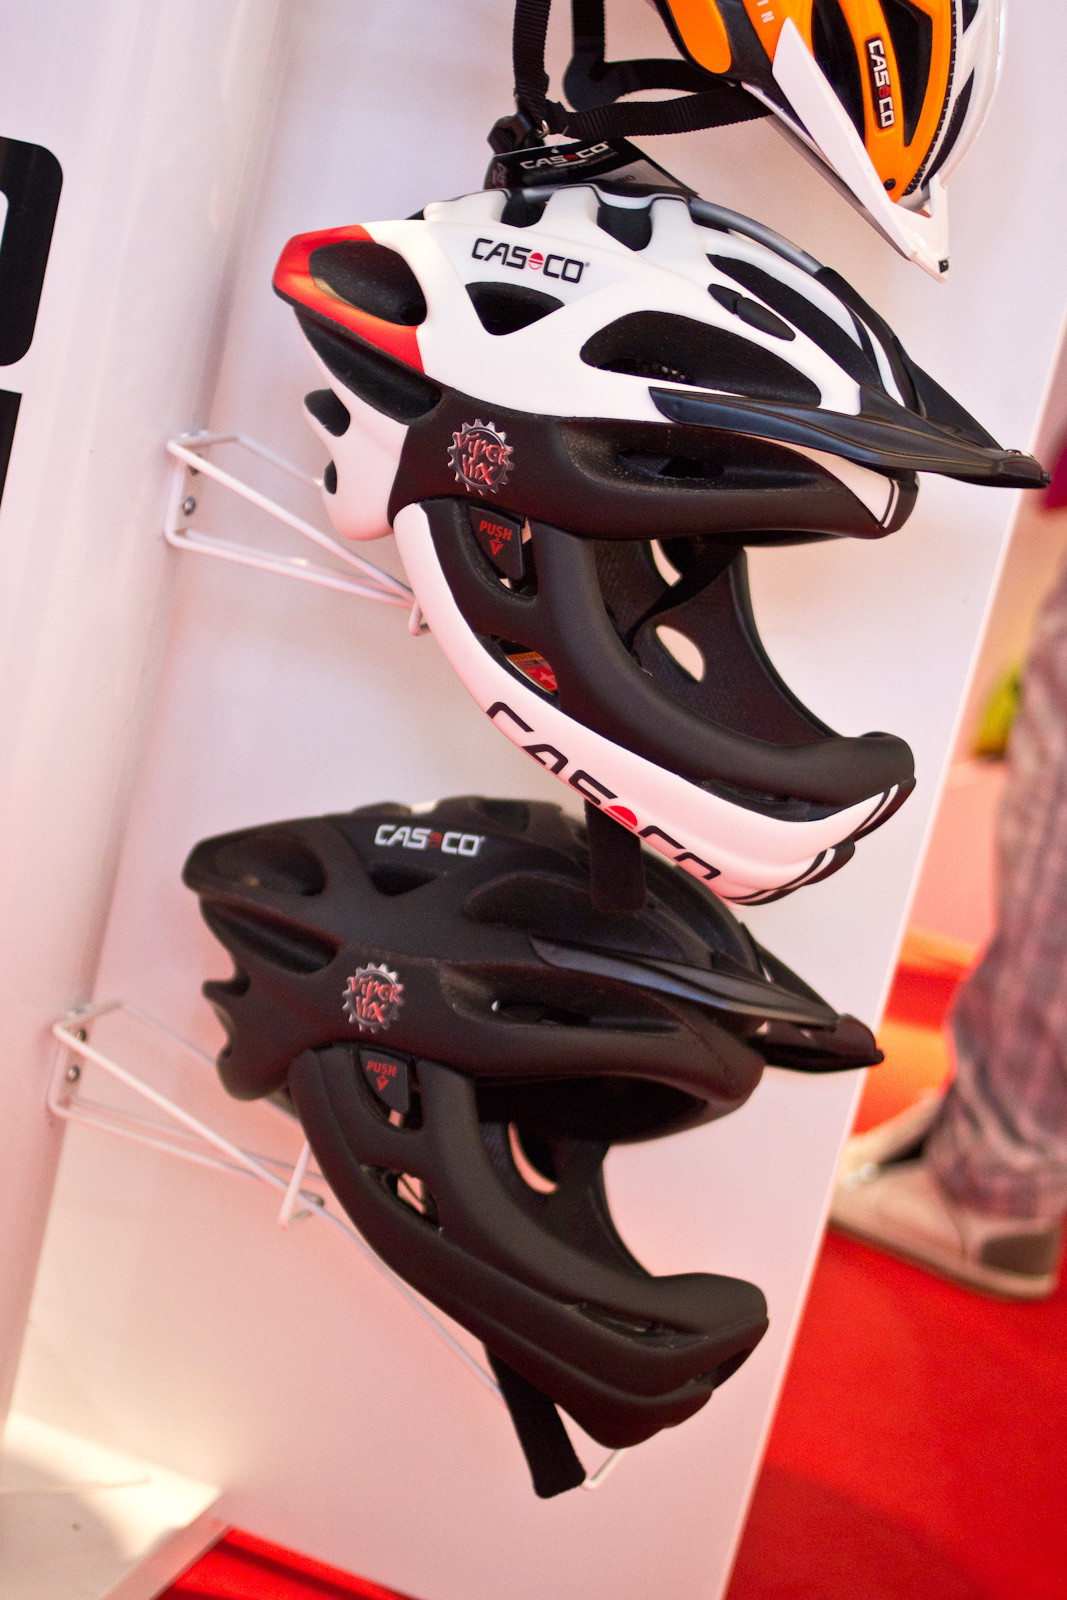 Remember the Switchblade? - Randoms at Eurobike 2013 - Mountain Biking Pictures - Vital MTB